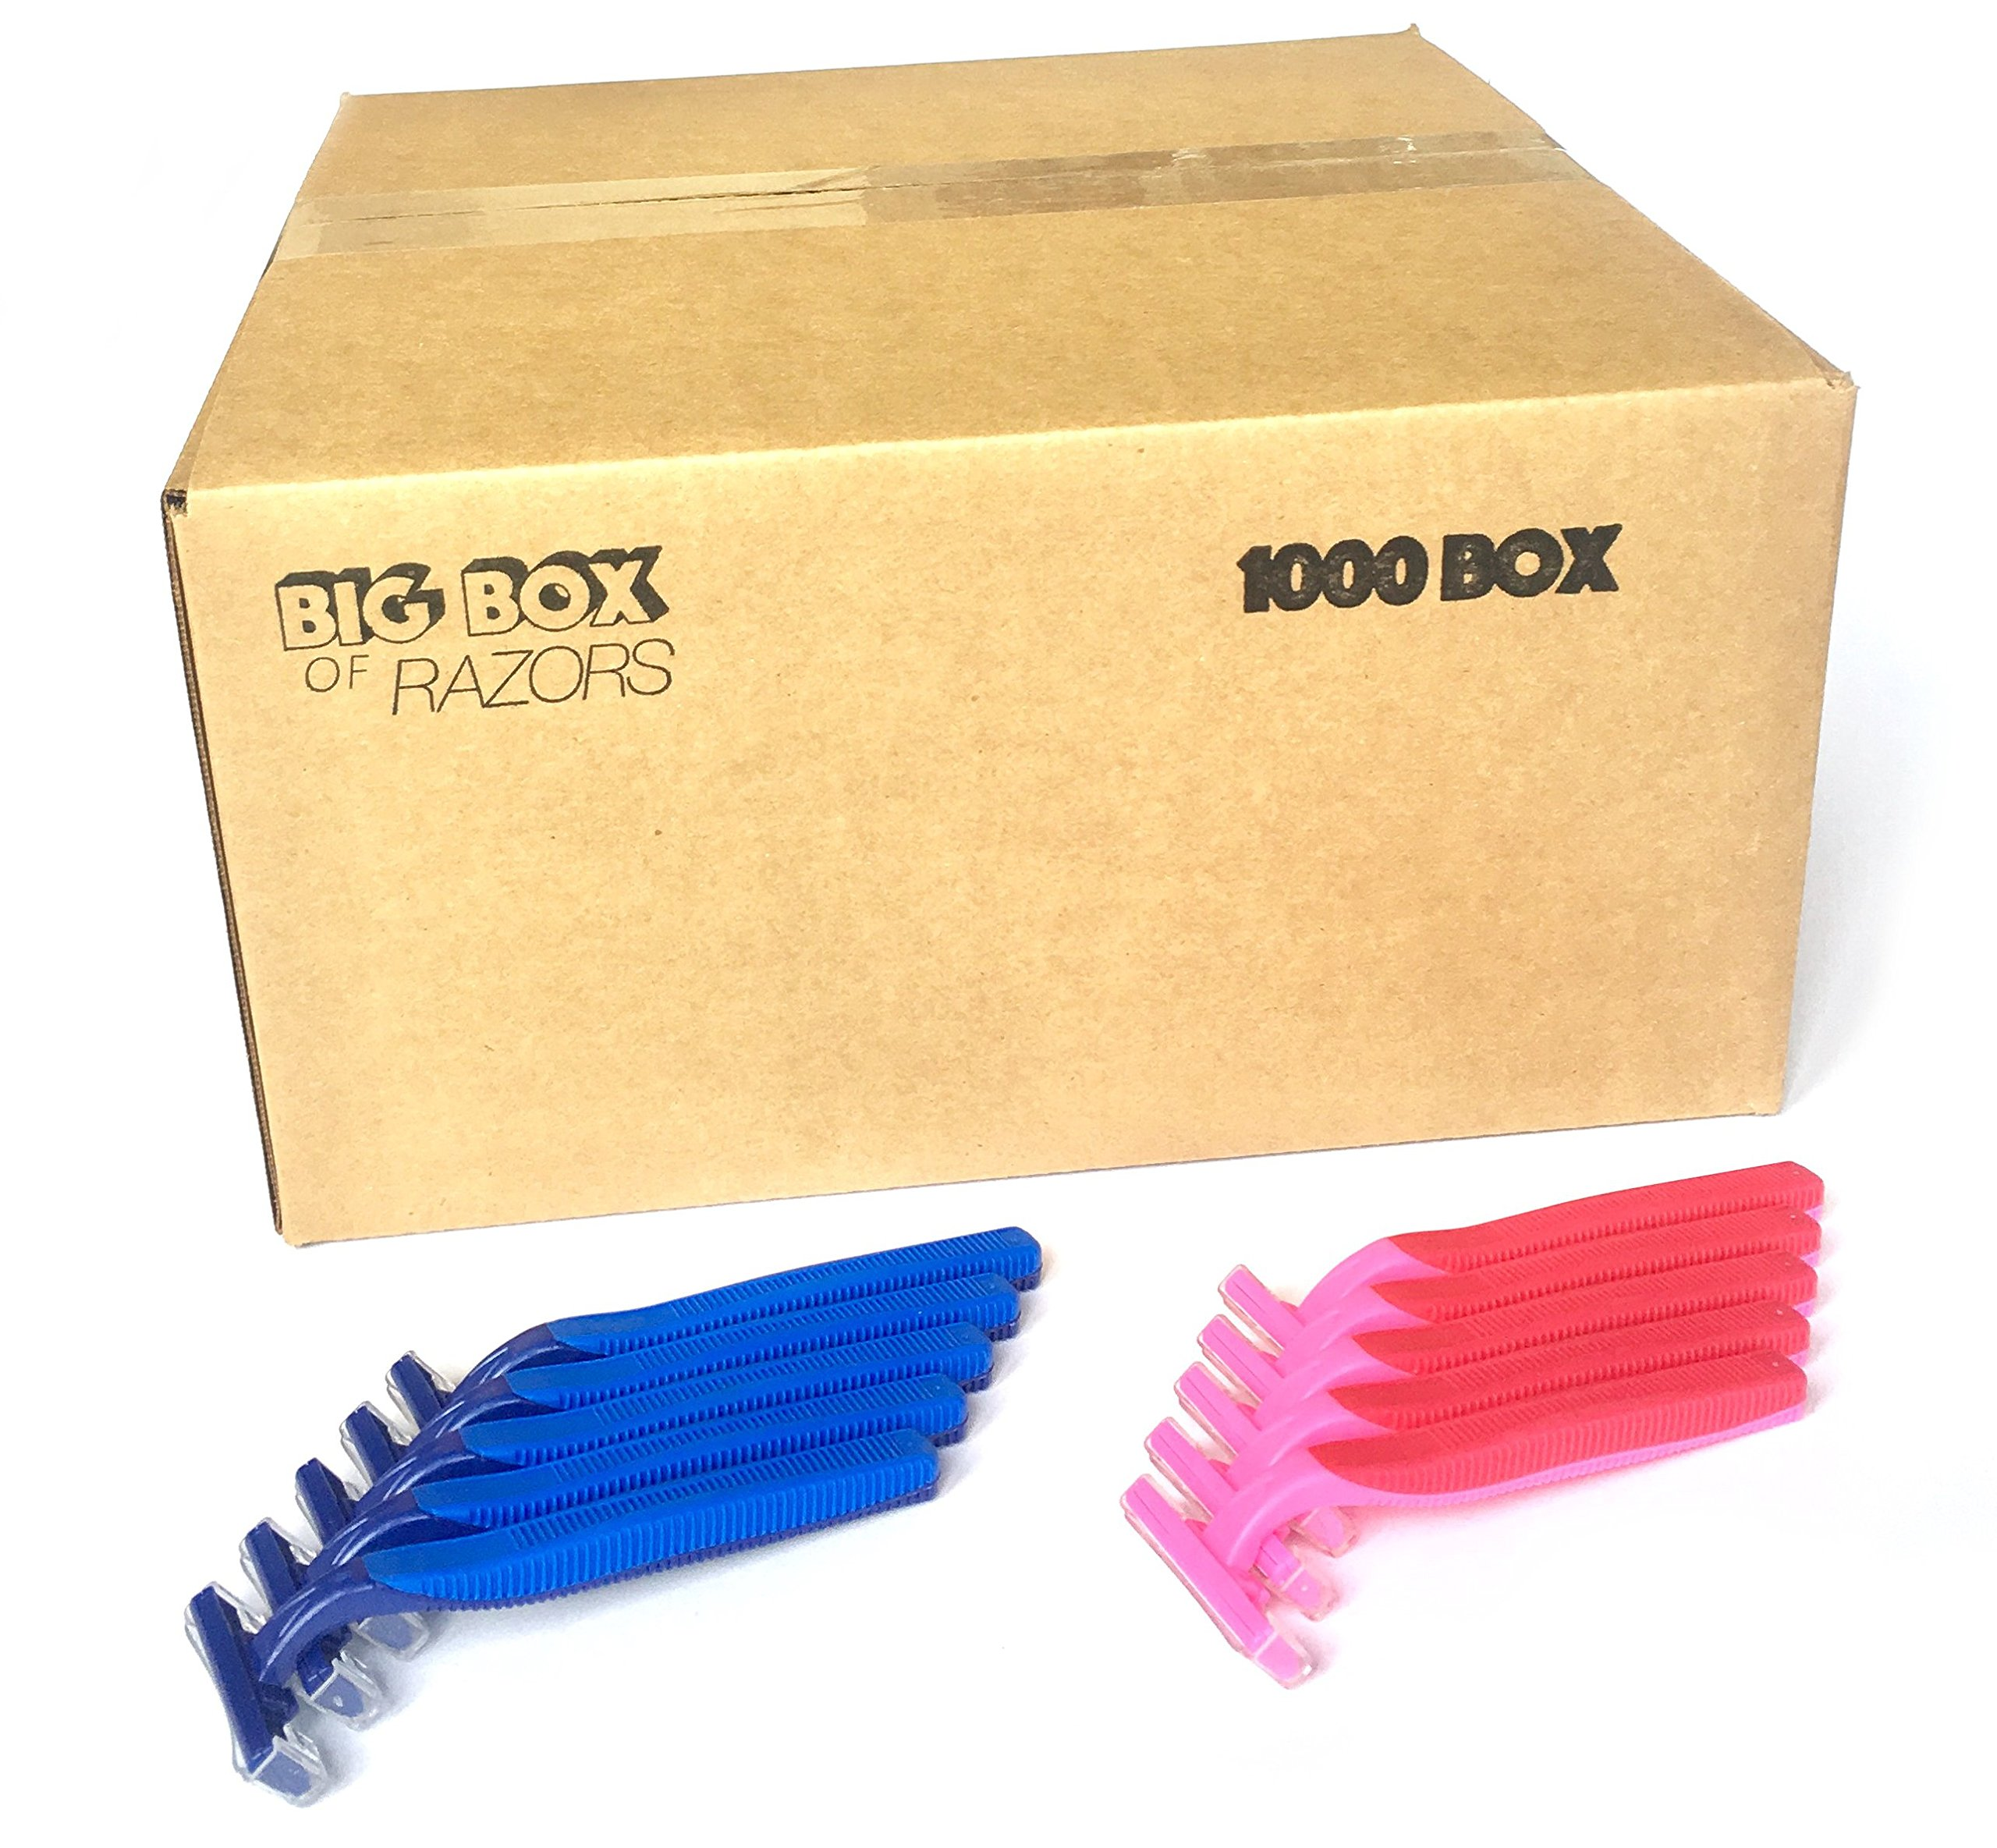 1,000 Box His & Her Combo Pack of Blue & Pink Bulk Wholesale Disposable Twin Blade Razors for Men & Women